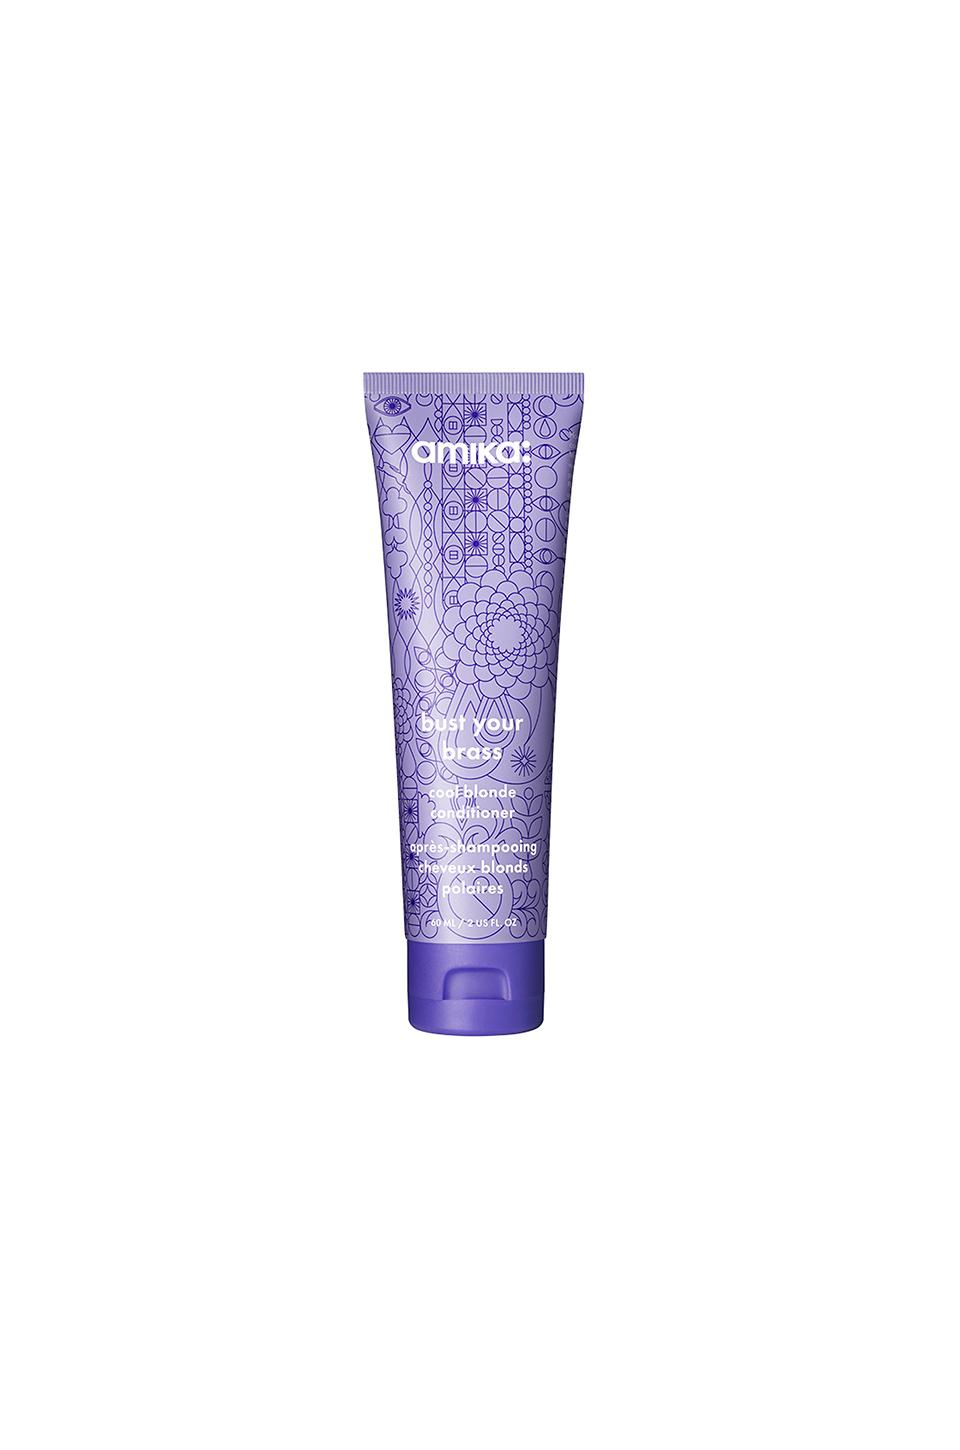 Amika Travel Bust Your Brass Cool Blonde Conditioner In Beauty: Na. In N,A